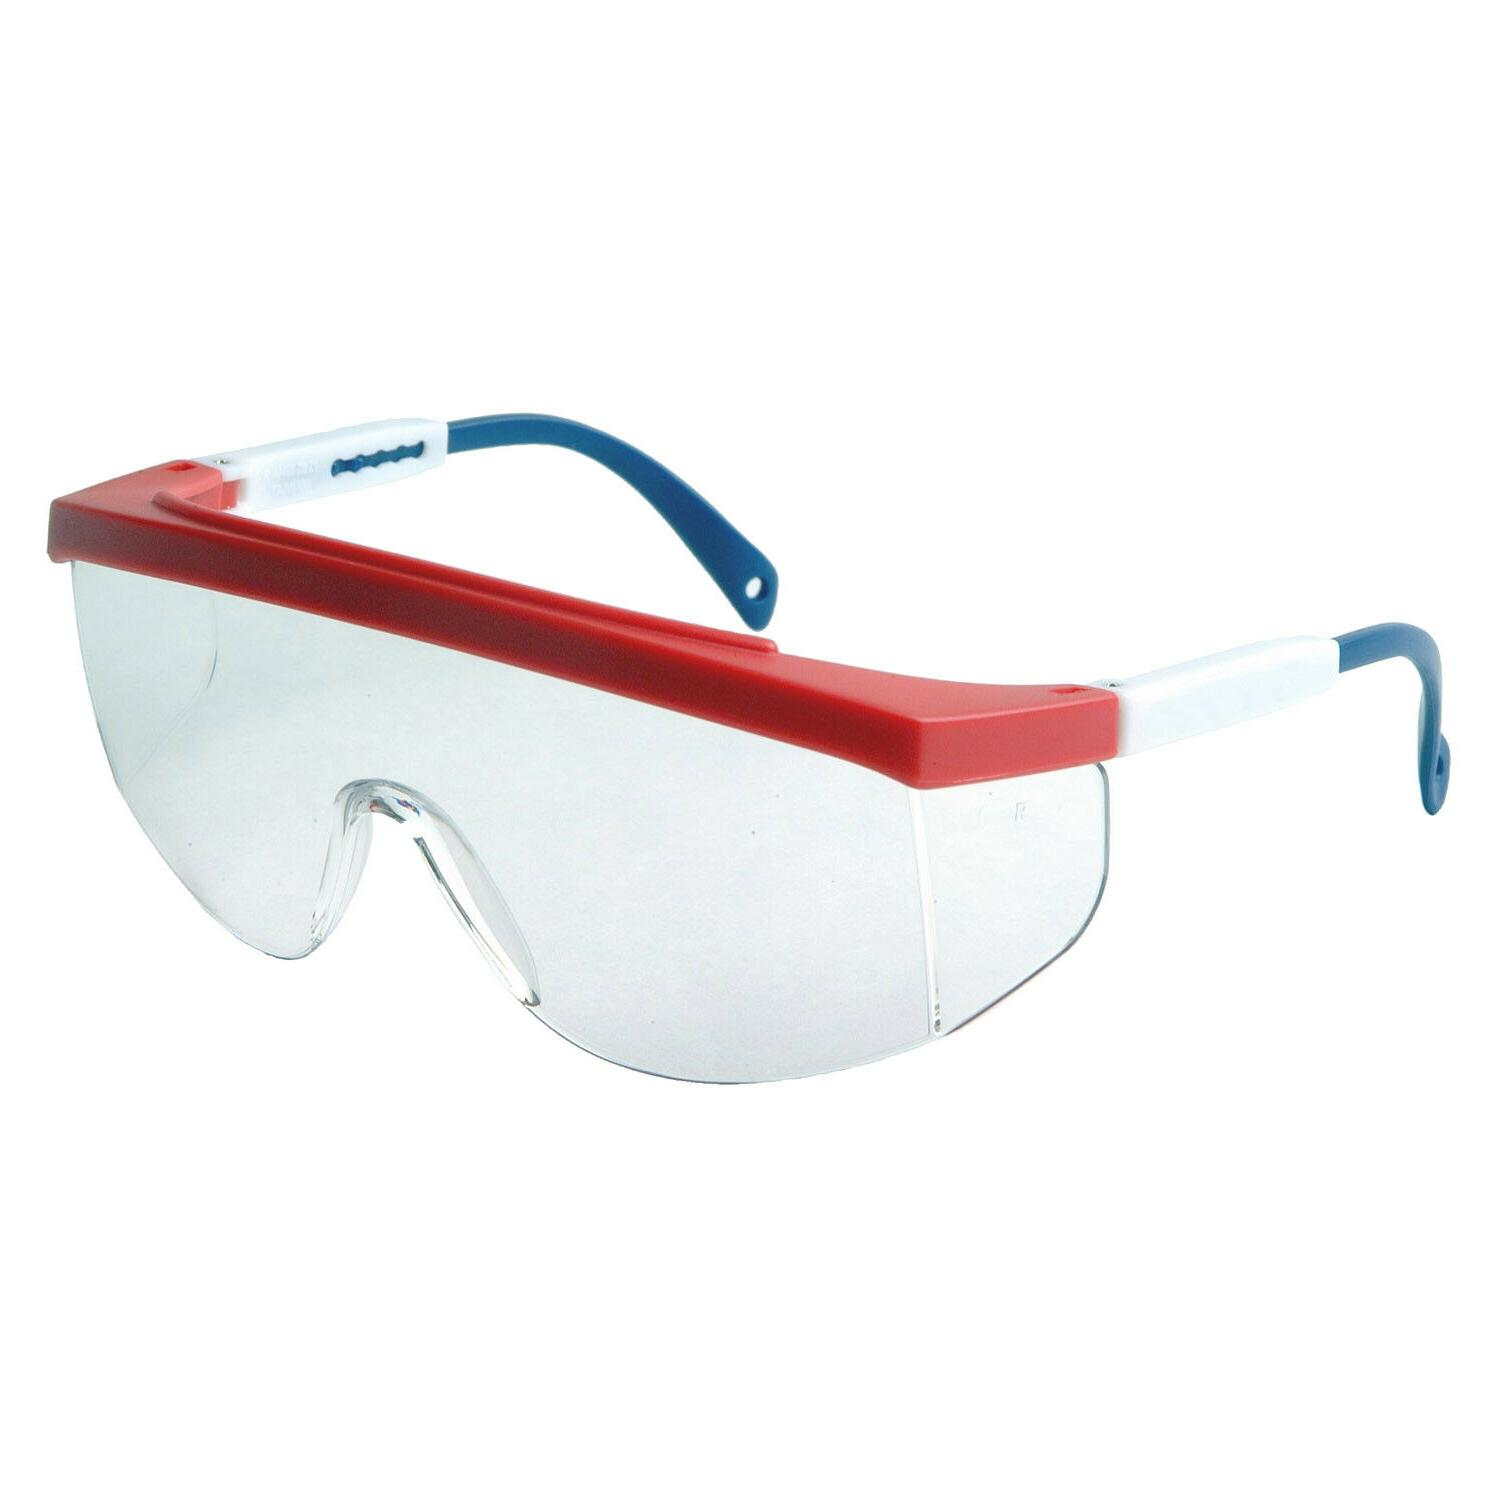 galaxy red white blue clear fit over